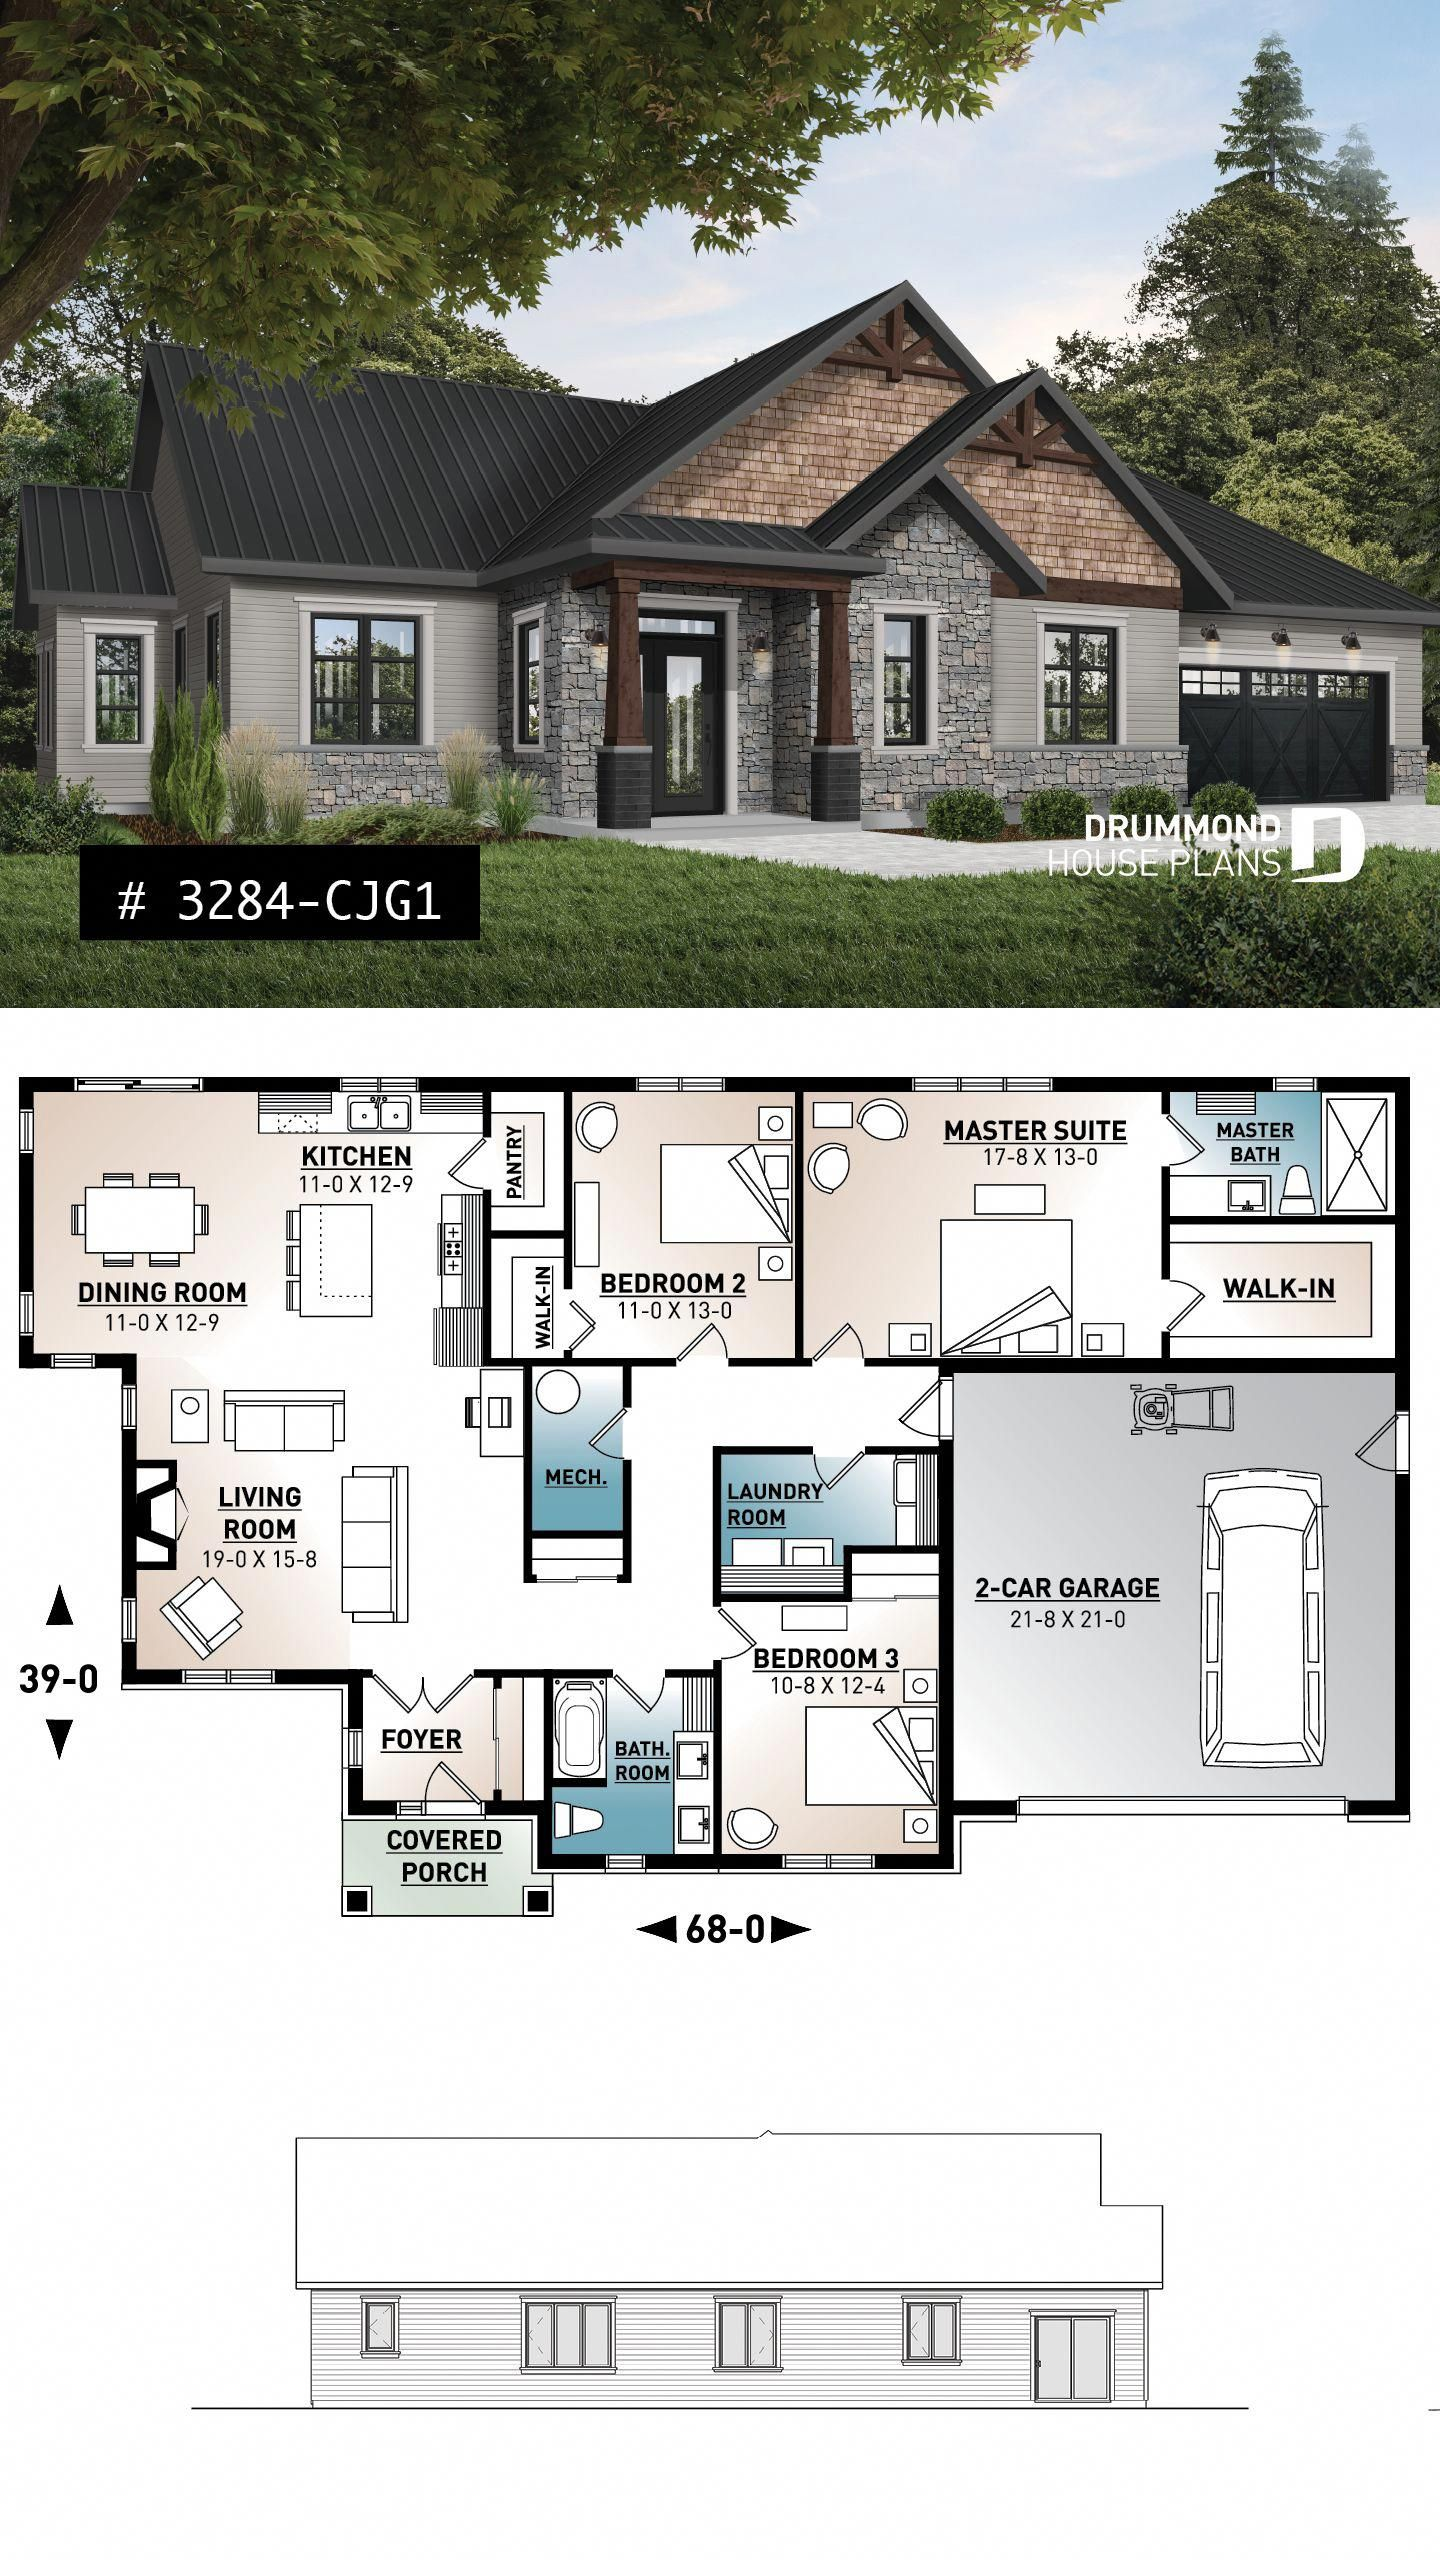 3 Bedroom Home Plan 9 Ceiling Large Master Suite Open Layout Pantry Fireplace Laundry Room Dream In 2020 Craftsman House Plans Sims House Plans New House Plans